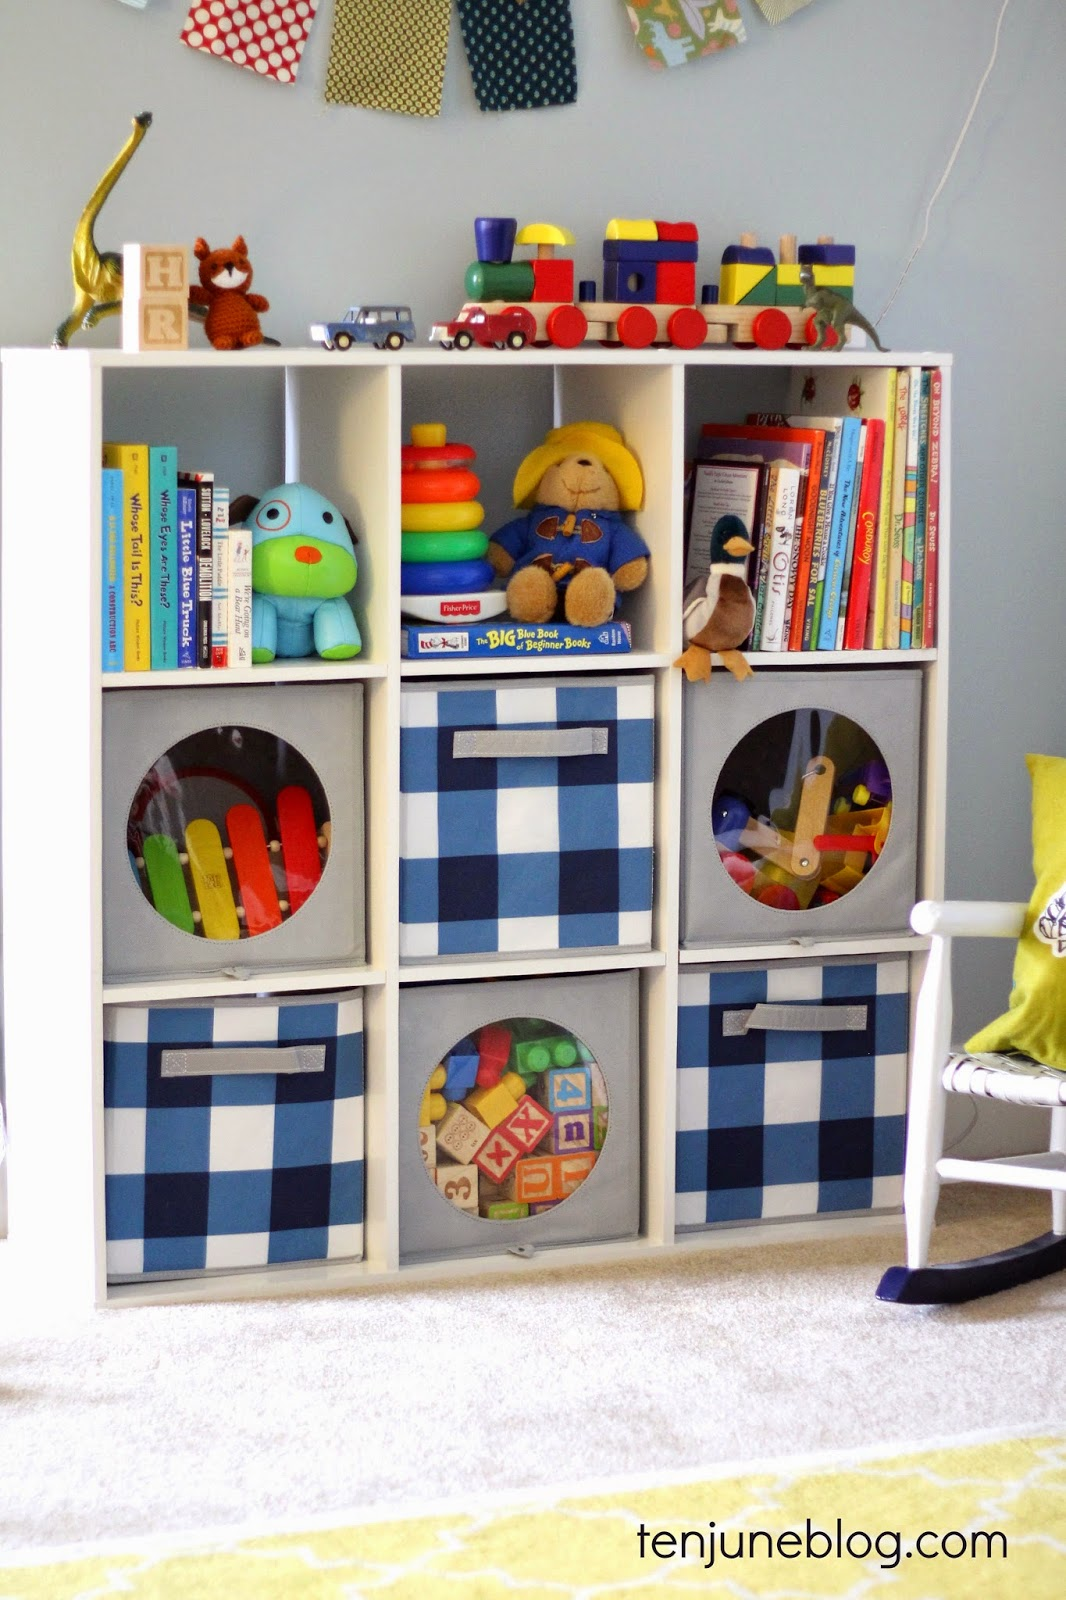 Ten june kids room play room toy storage ideas for Kids room storage ideas